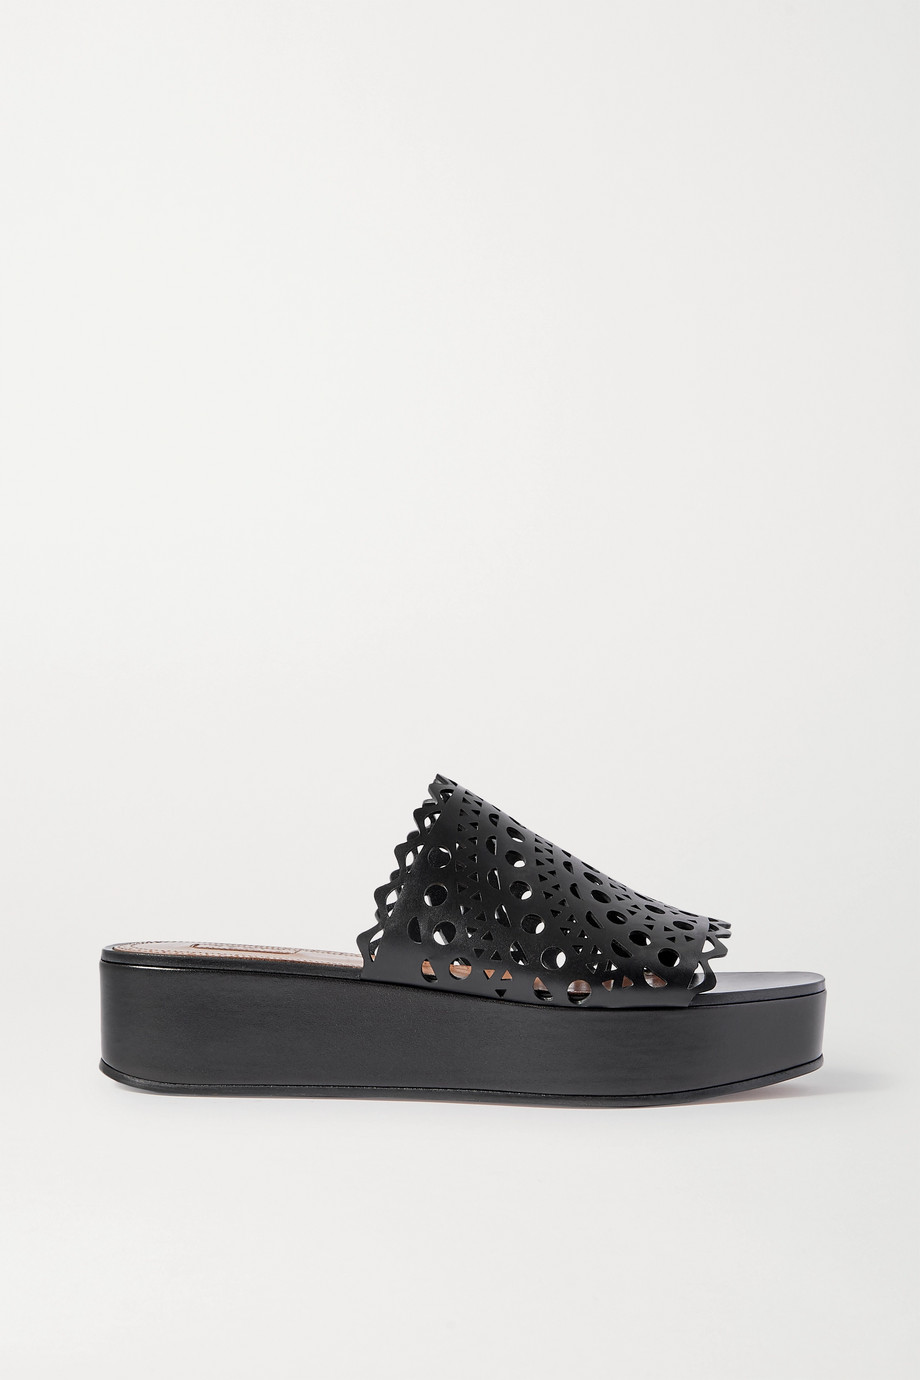 Alaïa Laser-cut leather platform slides